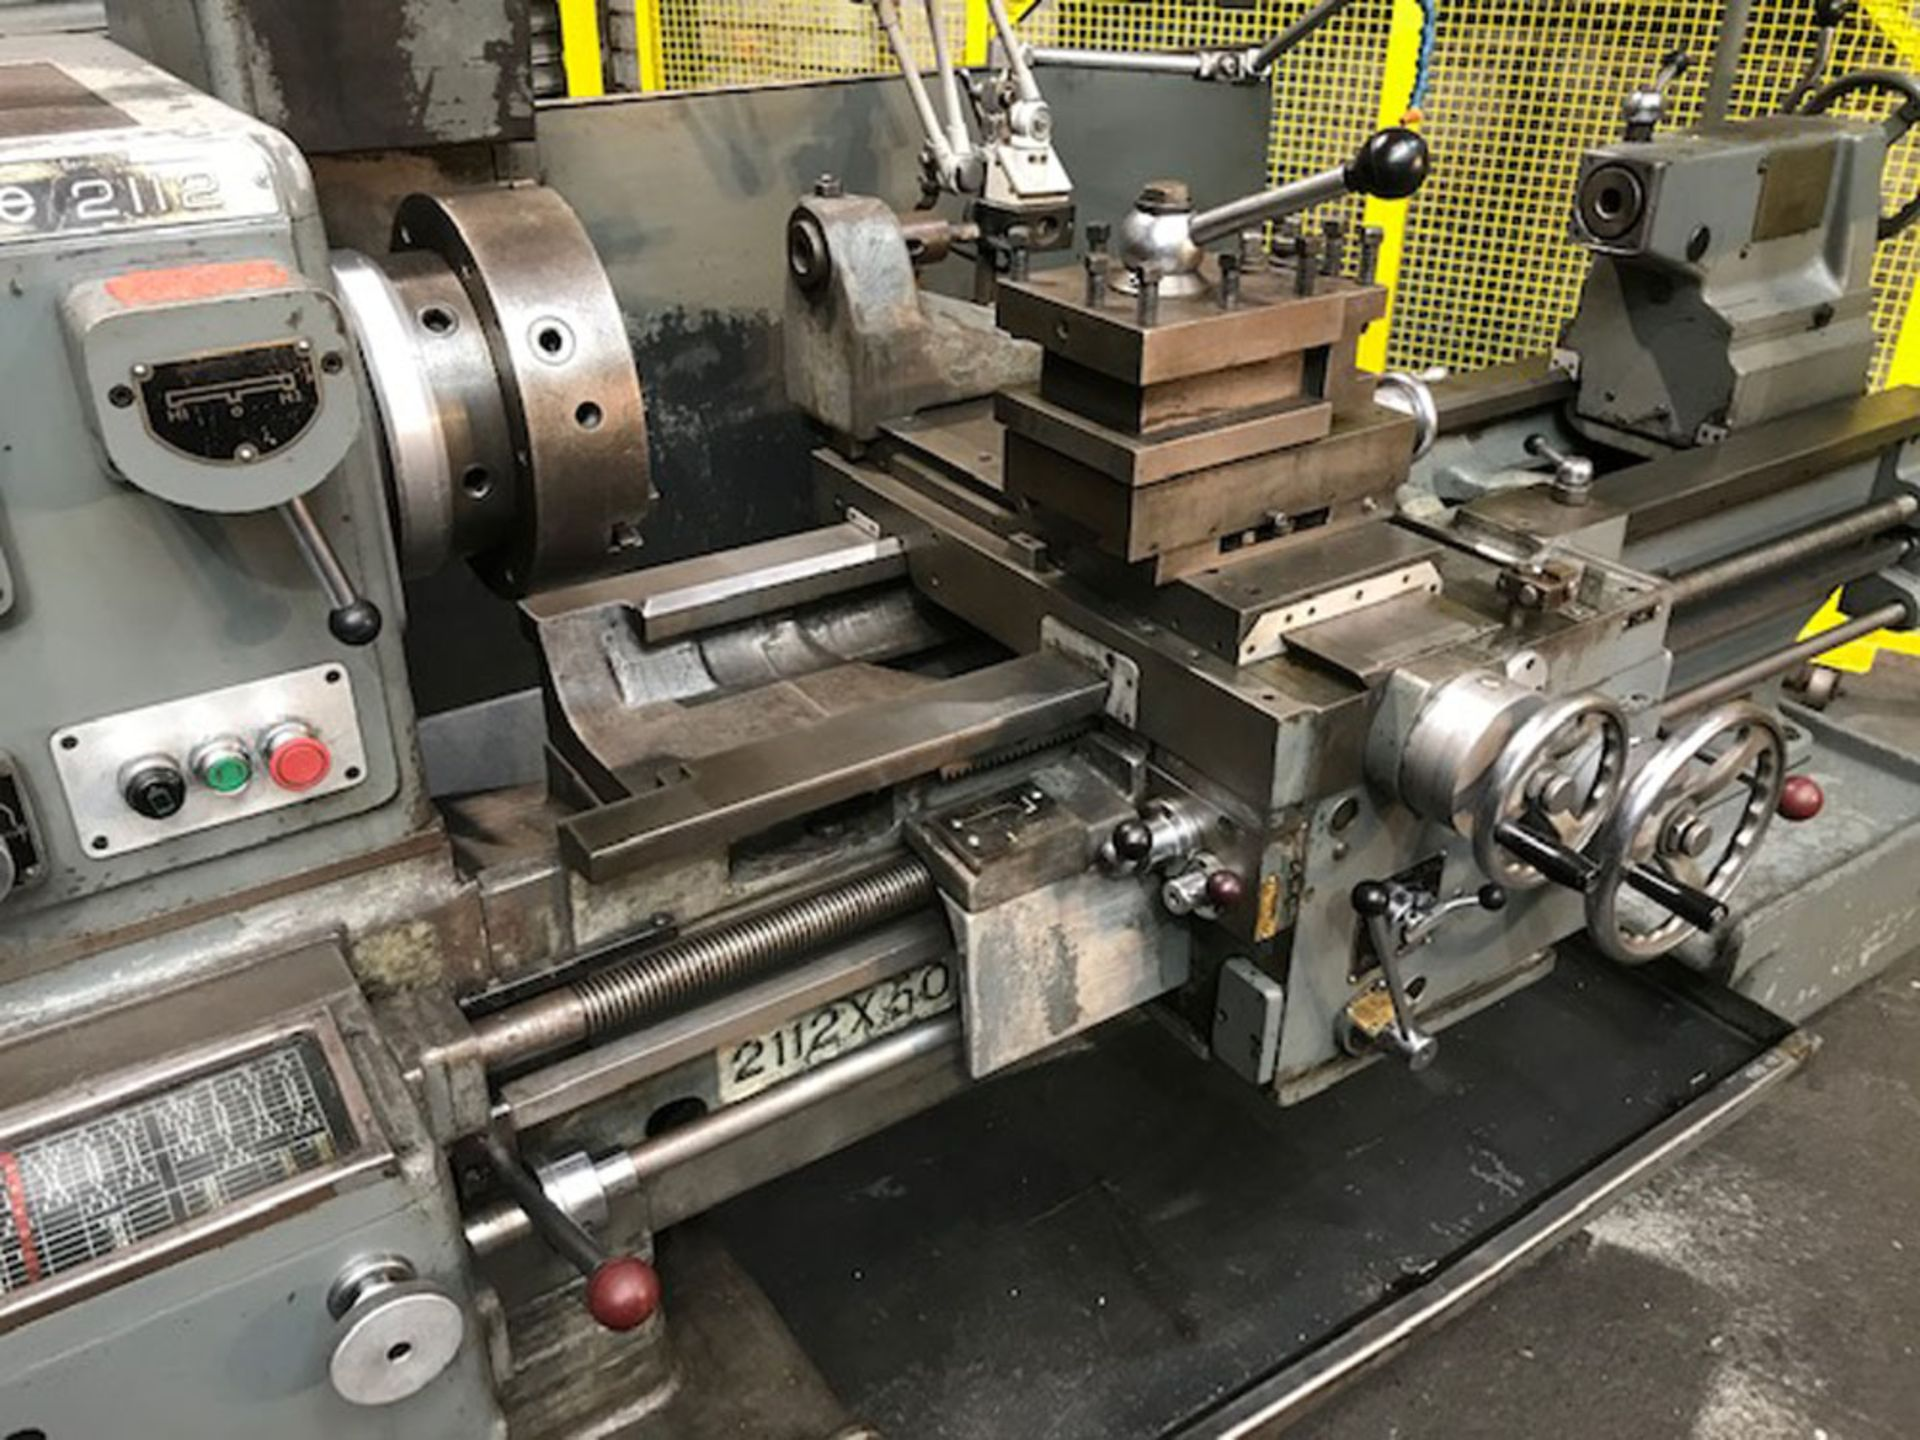 """Dean Smith & Grace 2112 x 50 Gap Bed Centre Lathe. Swing Over Bed 21"""". Distance Between Centres 50"""". - Image 3 of 9"""